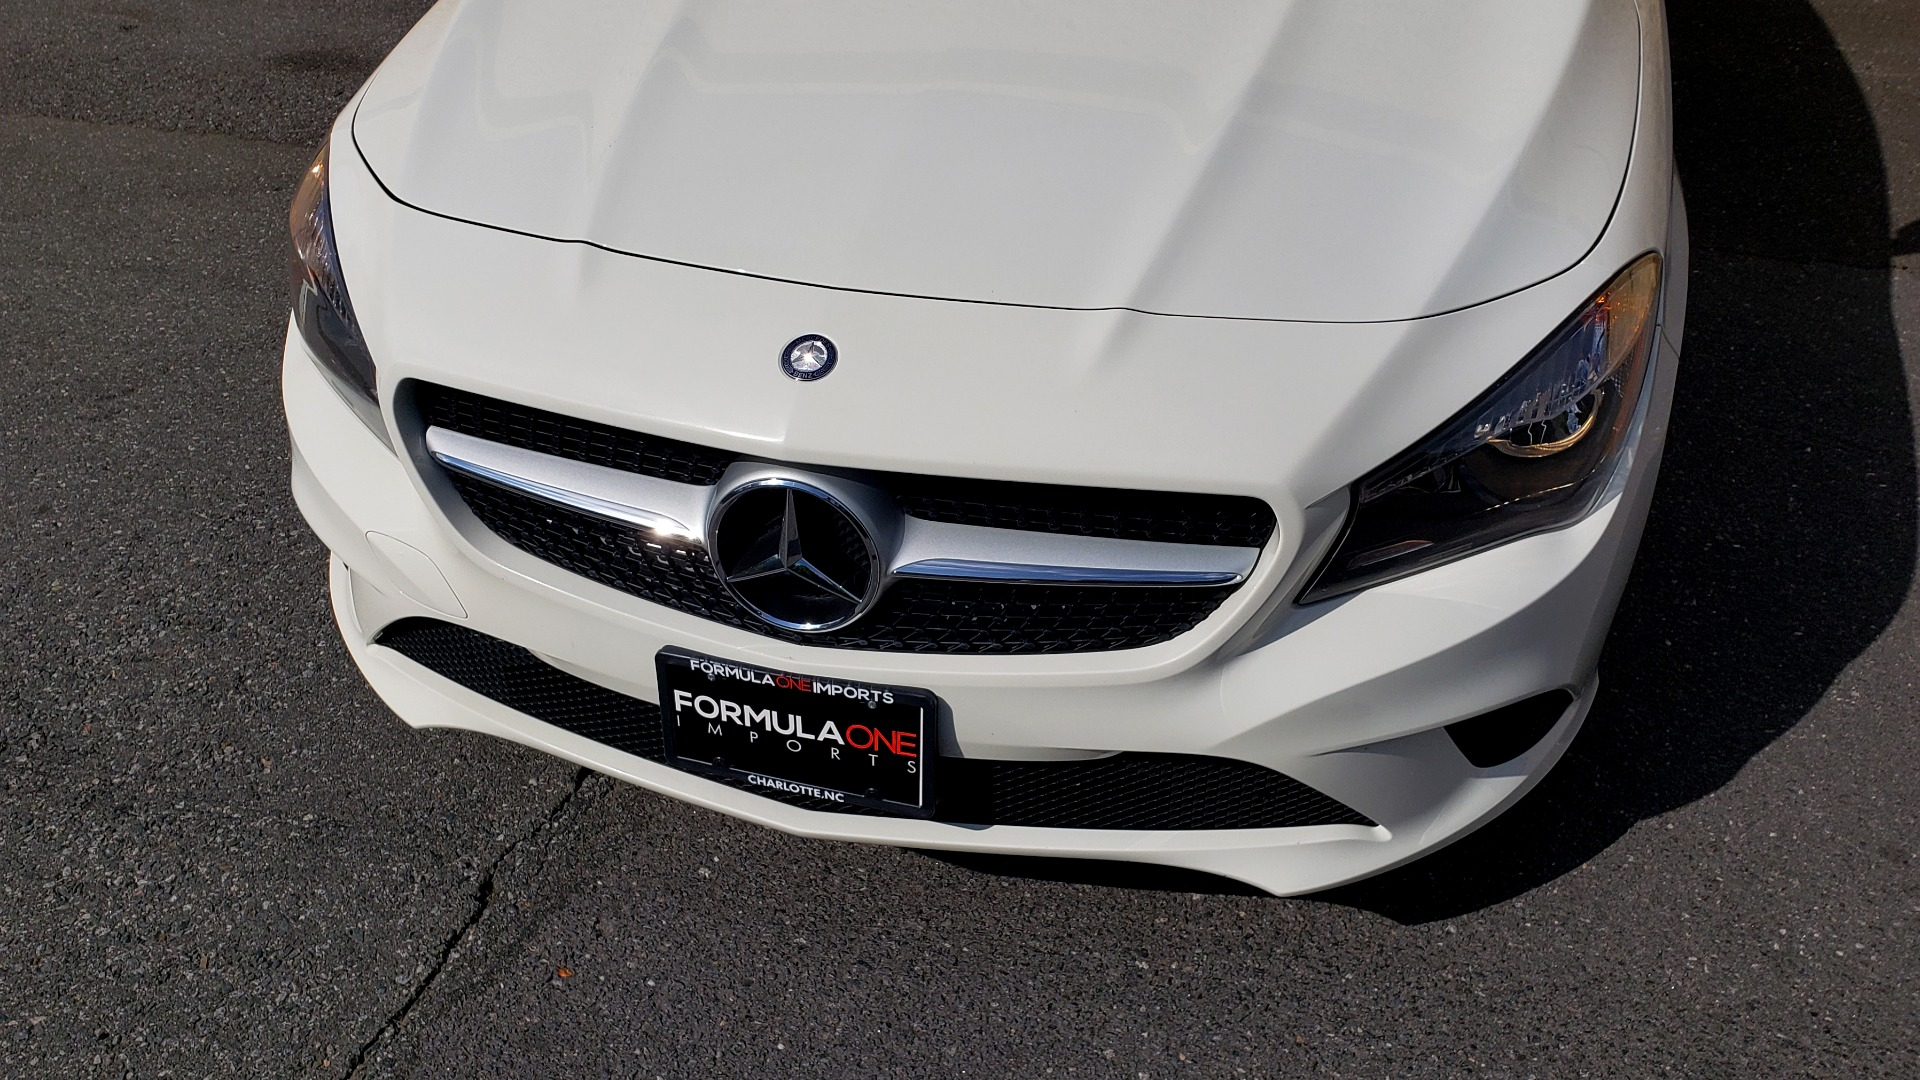 Used 2015 Mercedes-Benz CLA-Class CLA250 / FWD / SUNROOF / SPORT SUSP / CAMERA for sale Sold at Formula Imports in Charlotte NC 28227 18